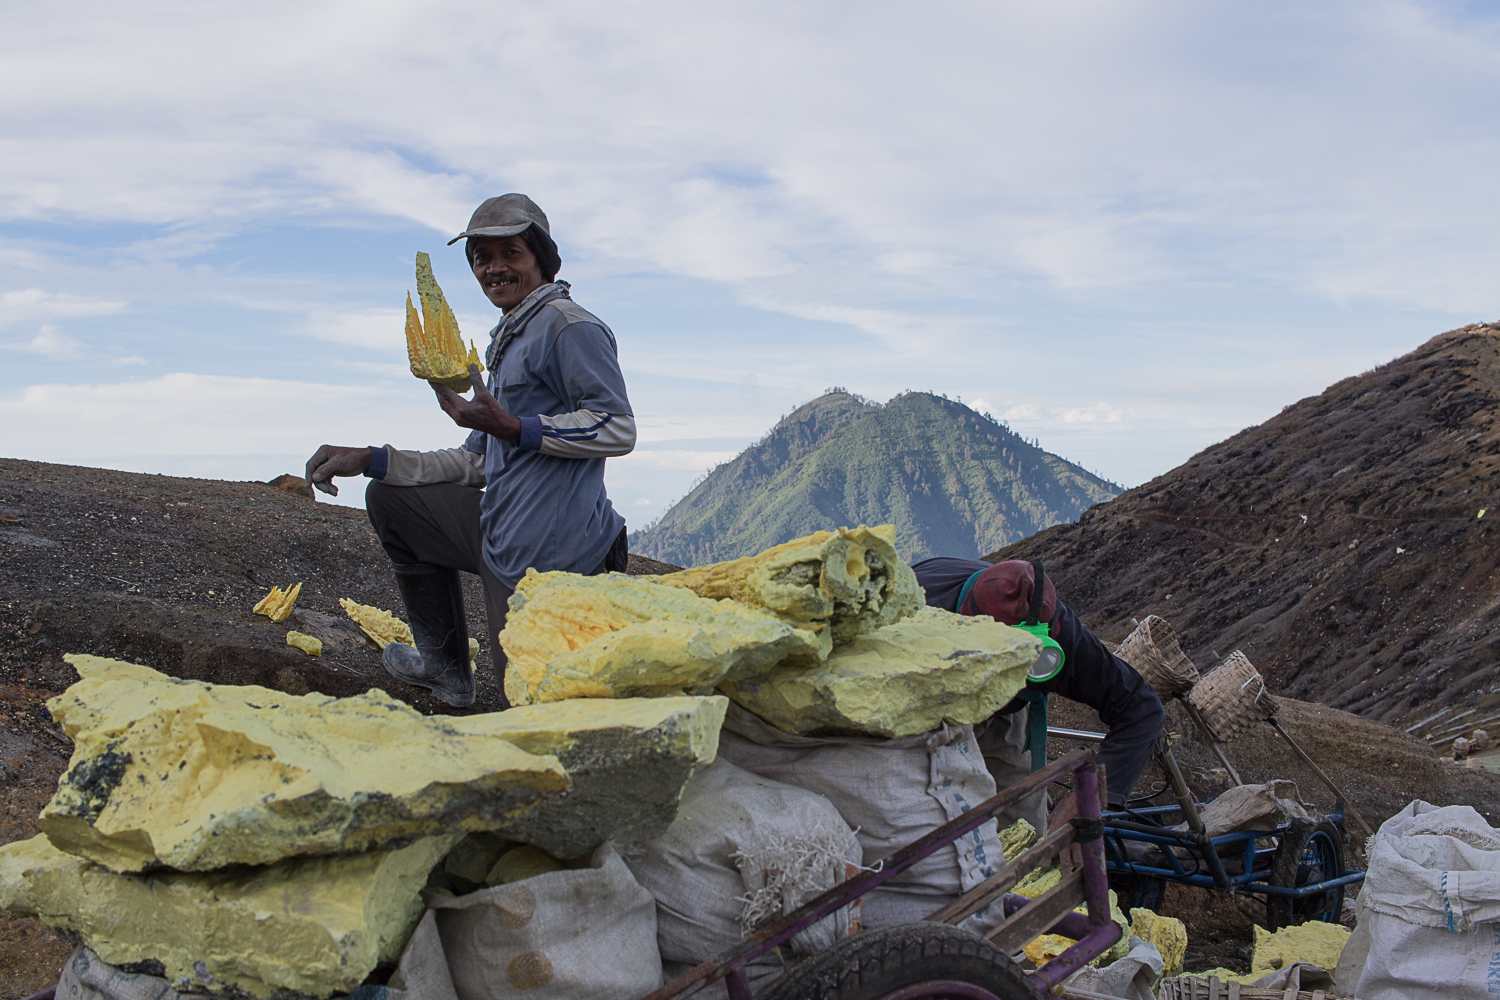 Hikers ascending Mt. Ijen share the trails with miners who enter the crater to collect sulfur.